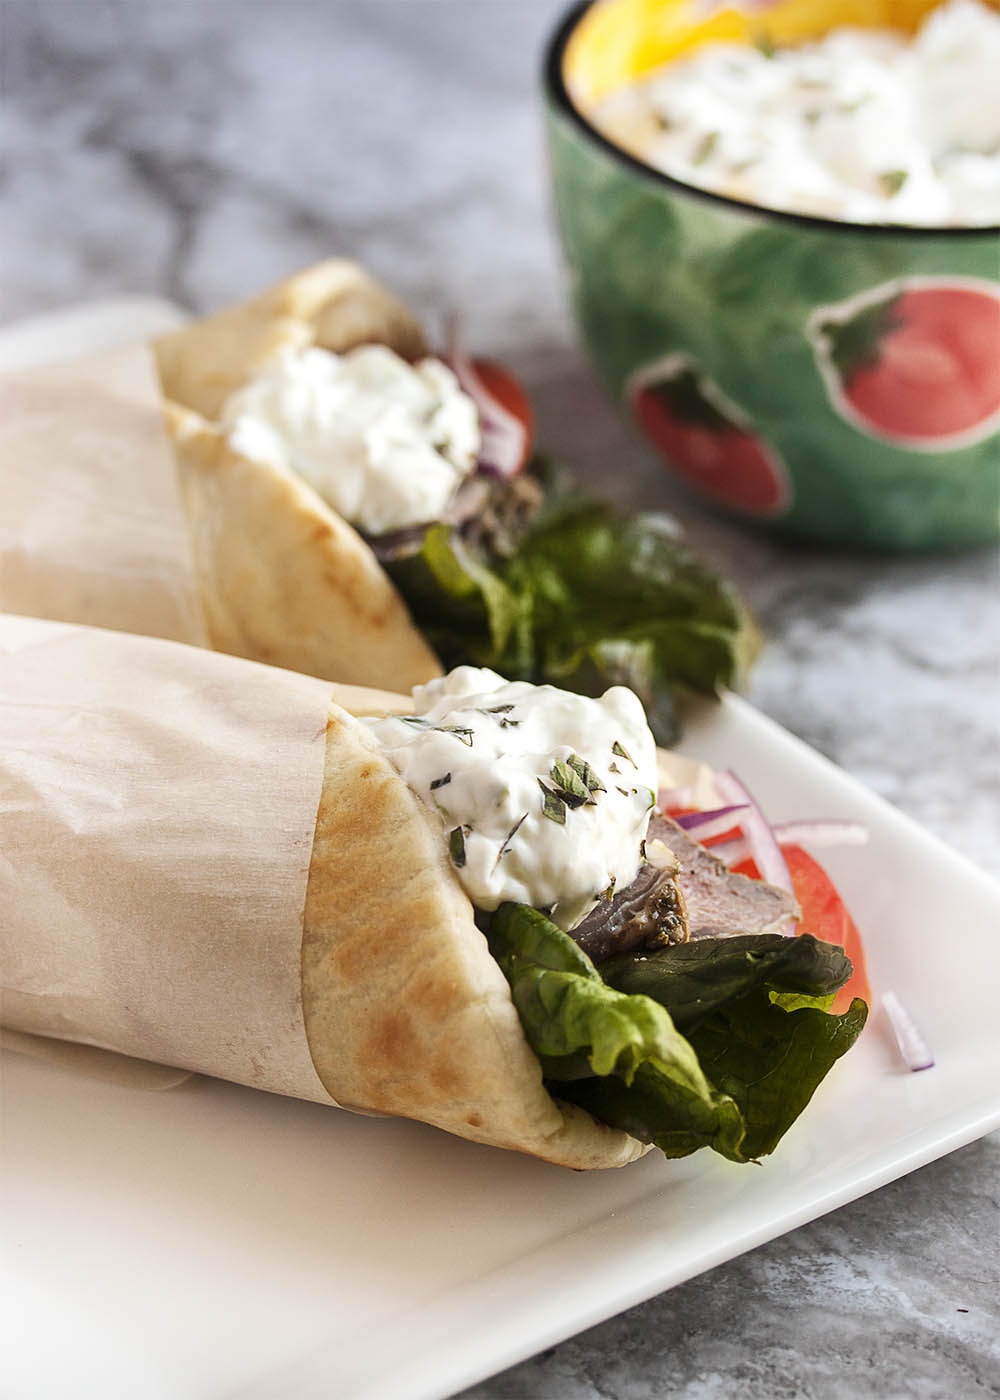 Leftover Lamb Gyros with Tzatziki Sauce - What to do with leftover lamb roast? Make these incredibly yummy lamb gyros and top them with a 5 minute tzatziki sauce.   justalittlebitofbacon.com